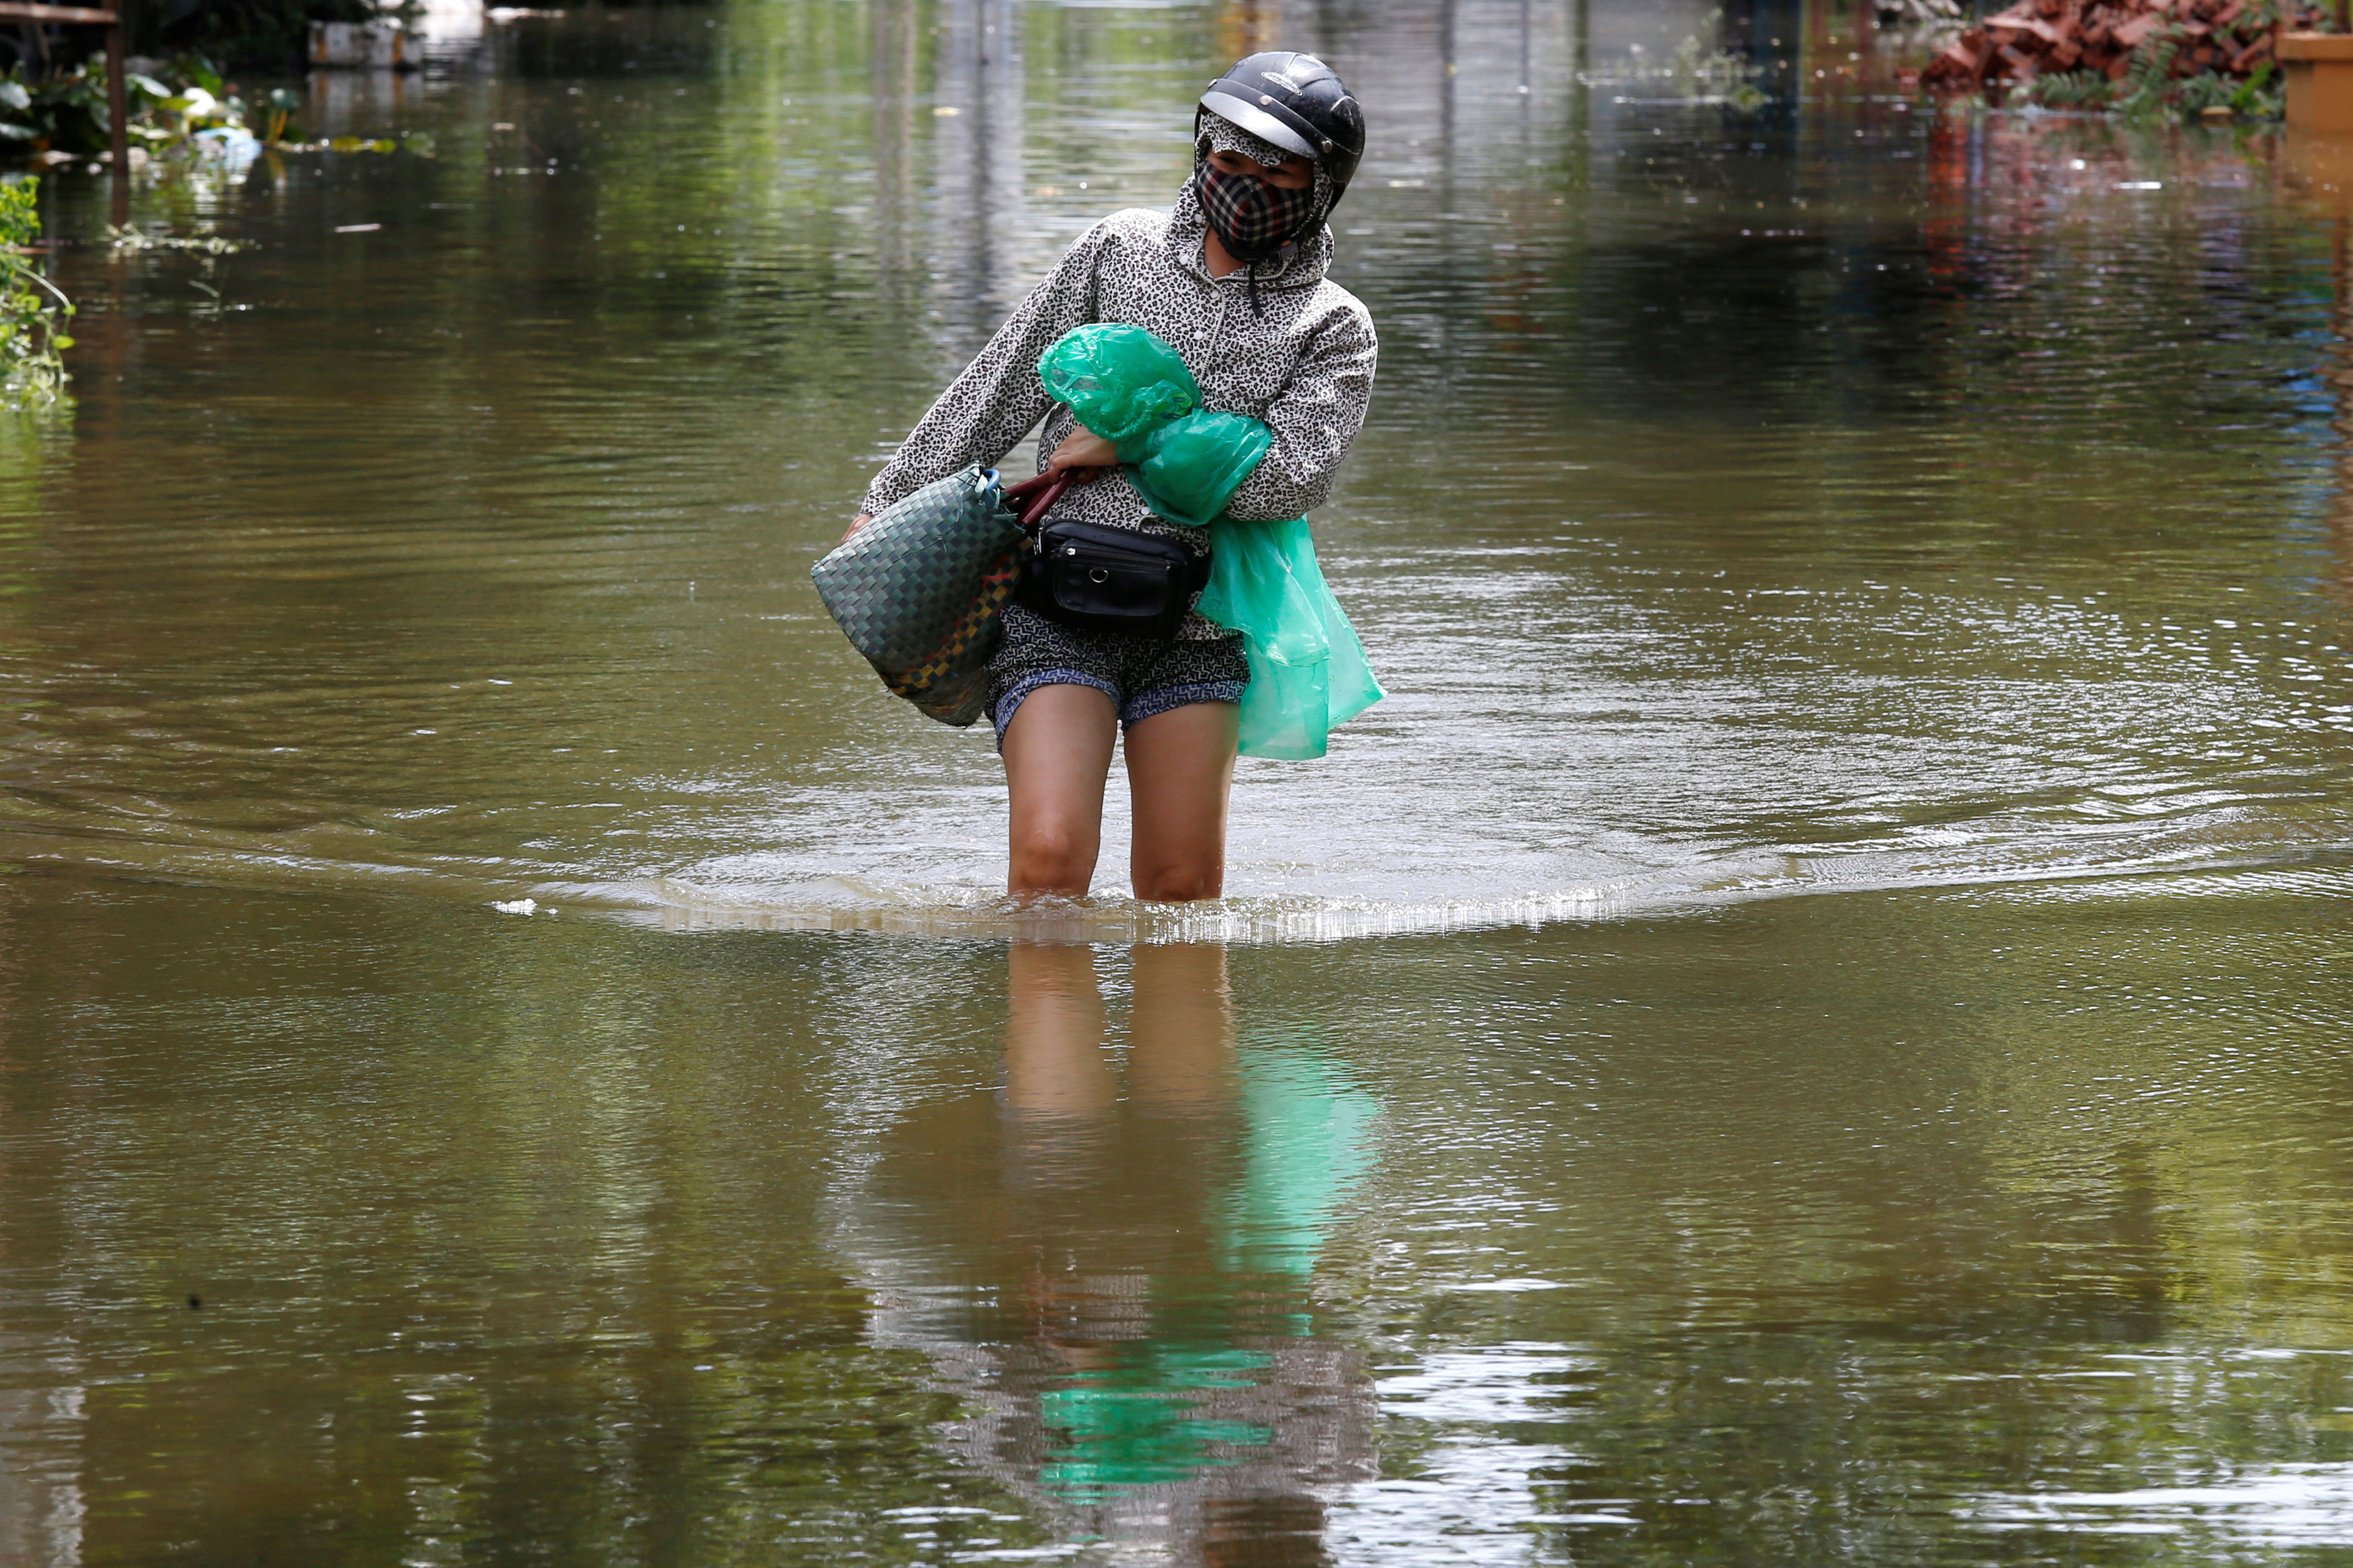 A woman wades through a flooded village after heavy rainfall caused by tropical storm Son Tinh in Ninh Binh province, Vietnam, July 22, 2018. REUTERS/Kham